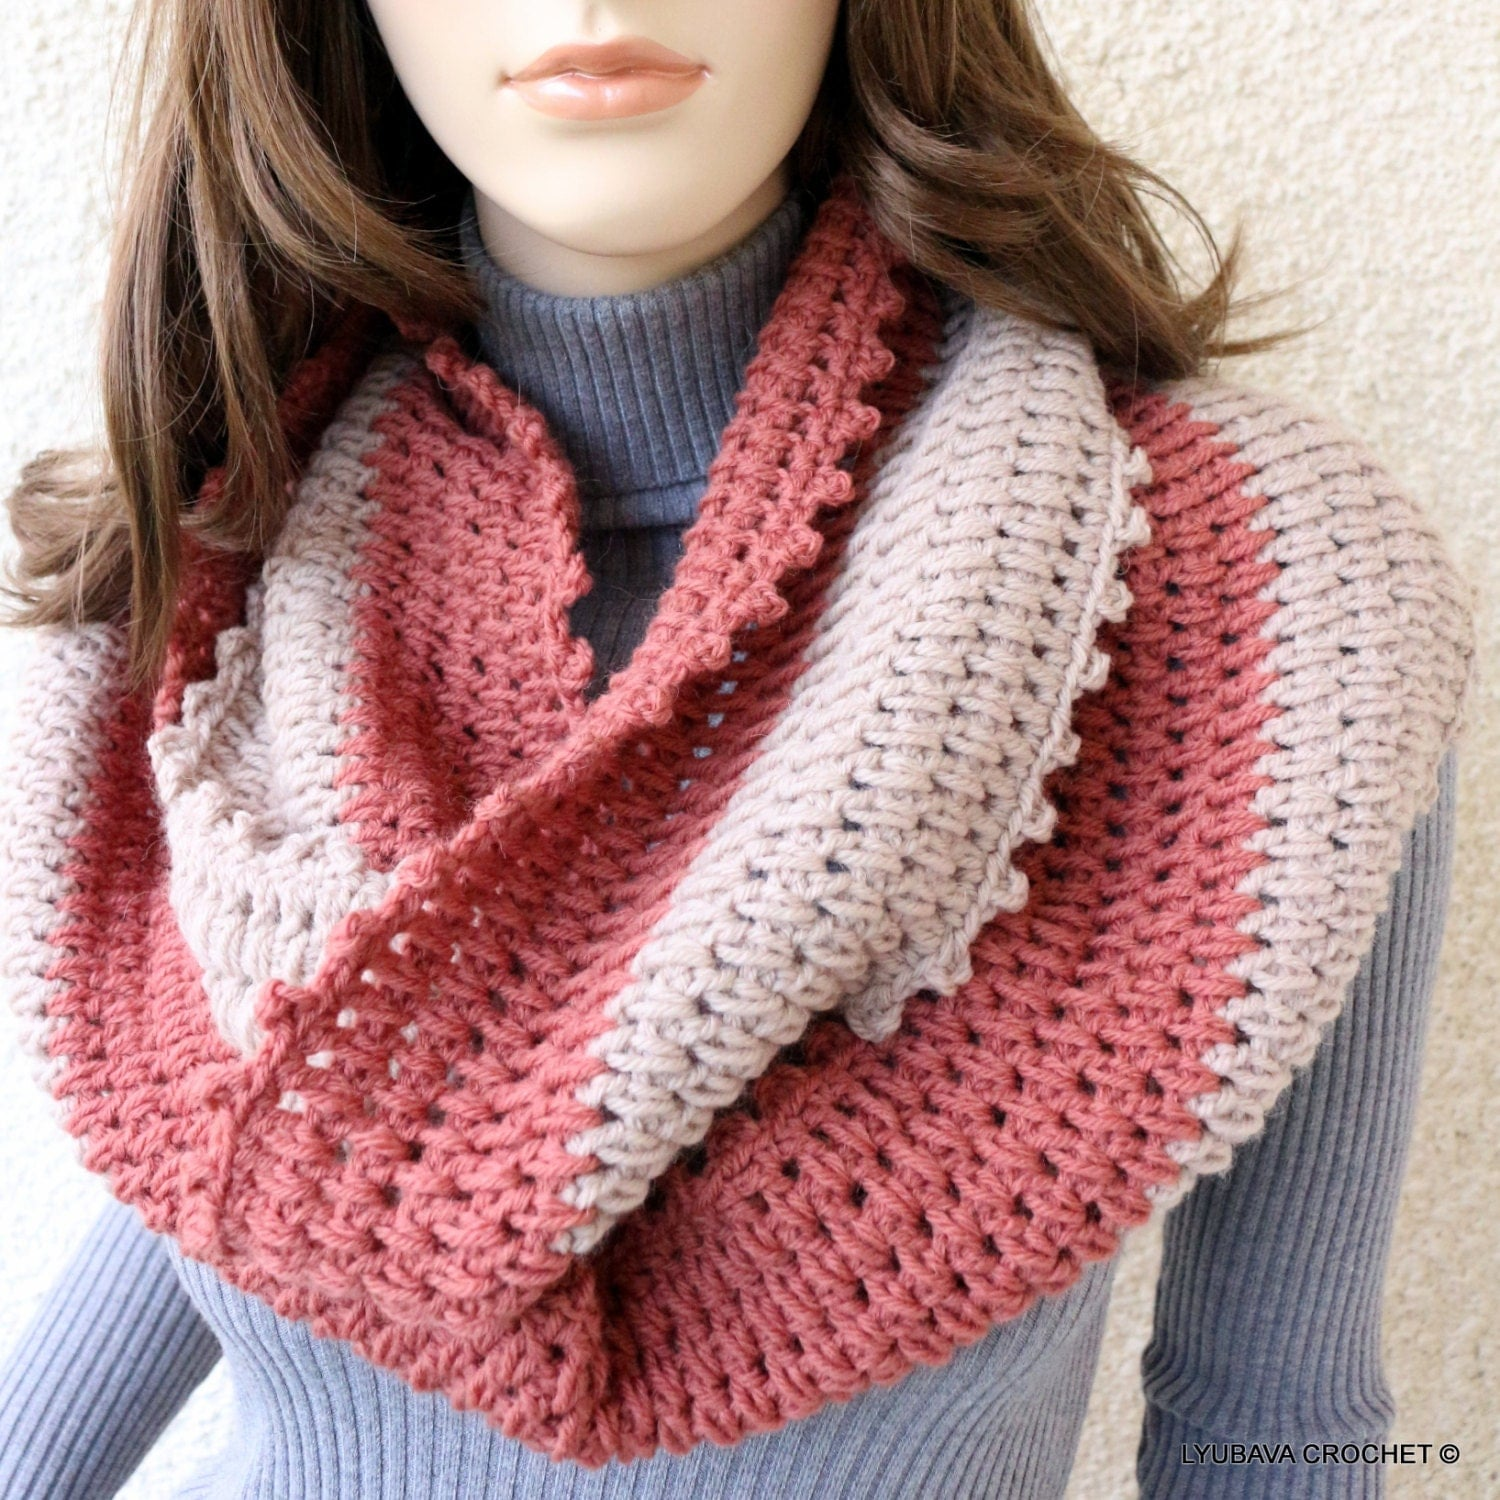 Crochet Scarf Infinity Scarf Two Colors by CrochetedByLyubava